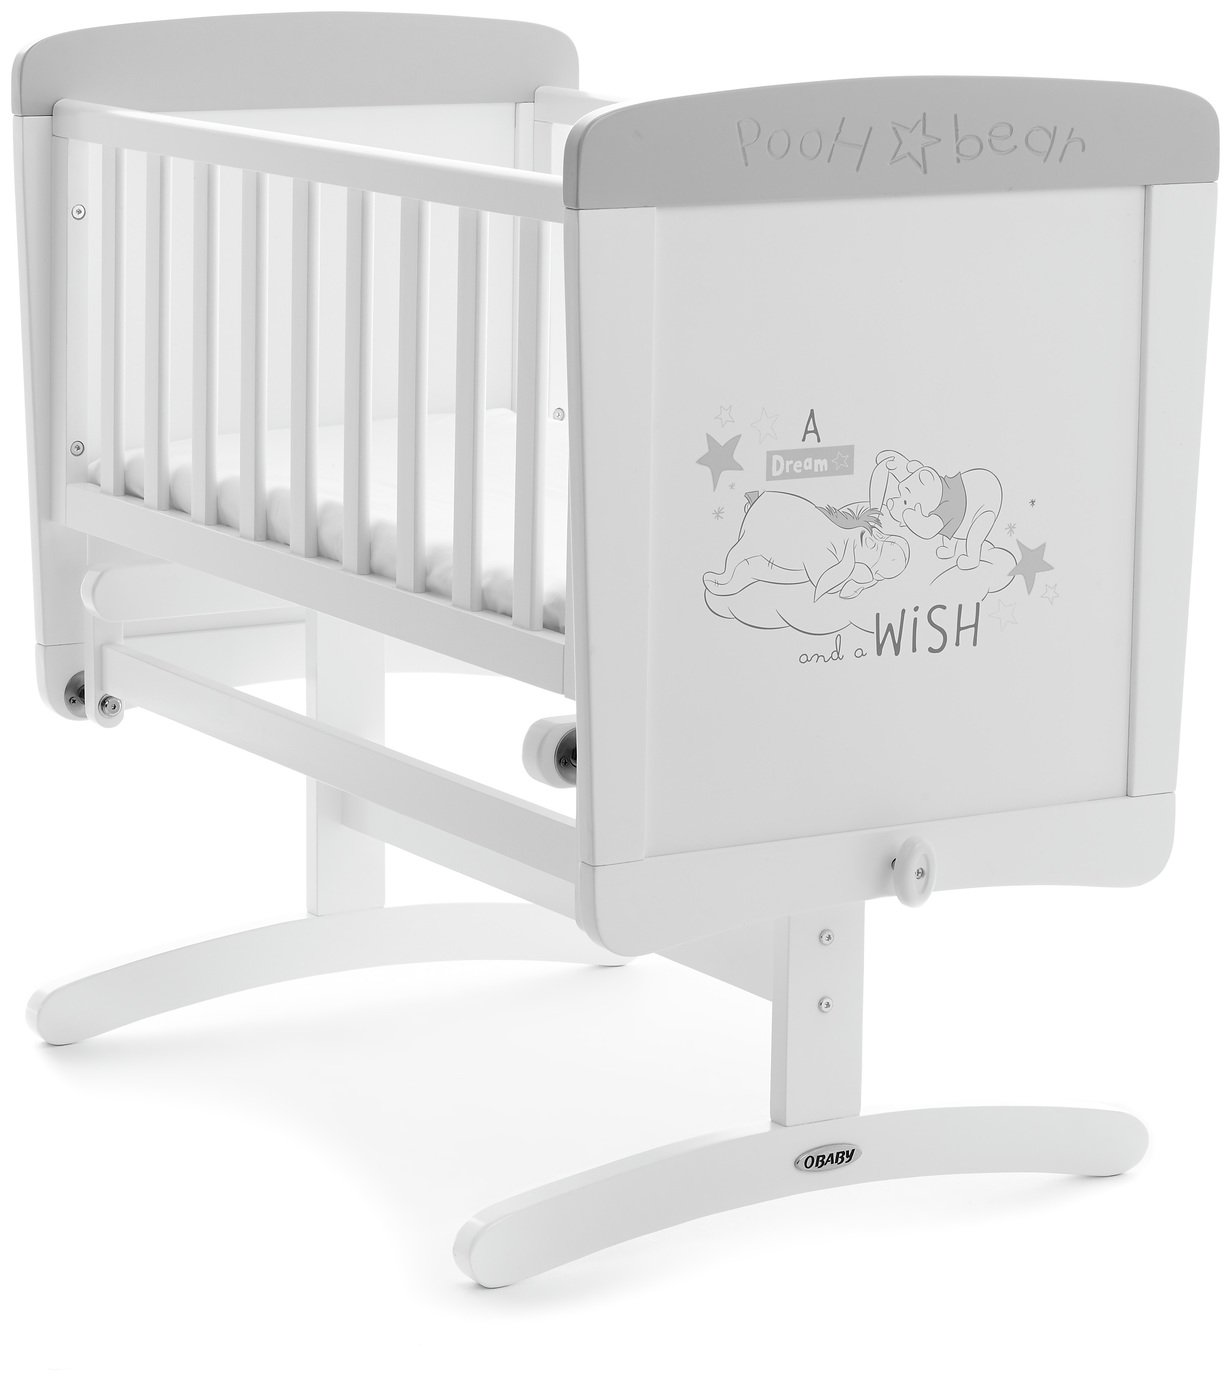 Disney Winnie The Pooh Crib & Mattress - Dreams & Wishes